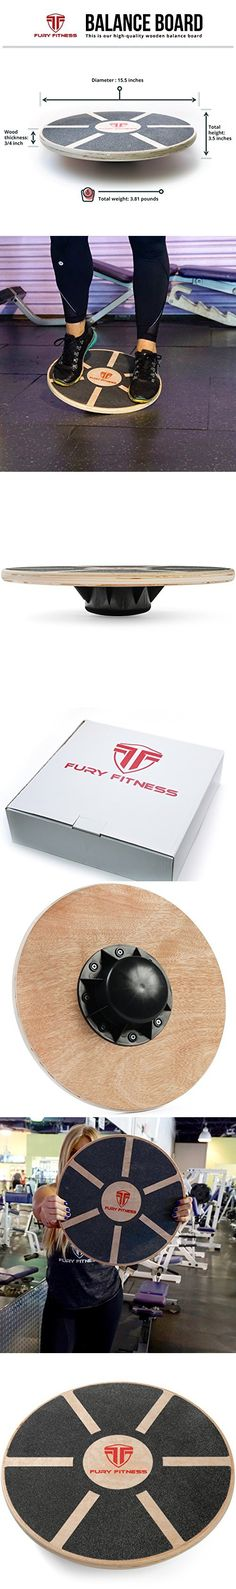 Fury Fitness Wooden Balance Board - Round - Made of Wood - Perfect for Surf Training - Balancing - Rehab - Home Use Wobble Trainer